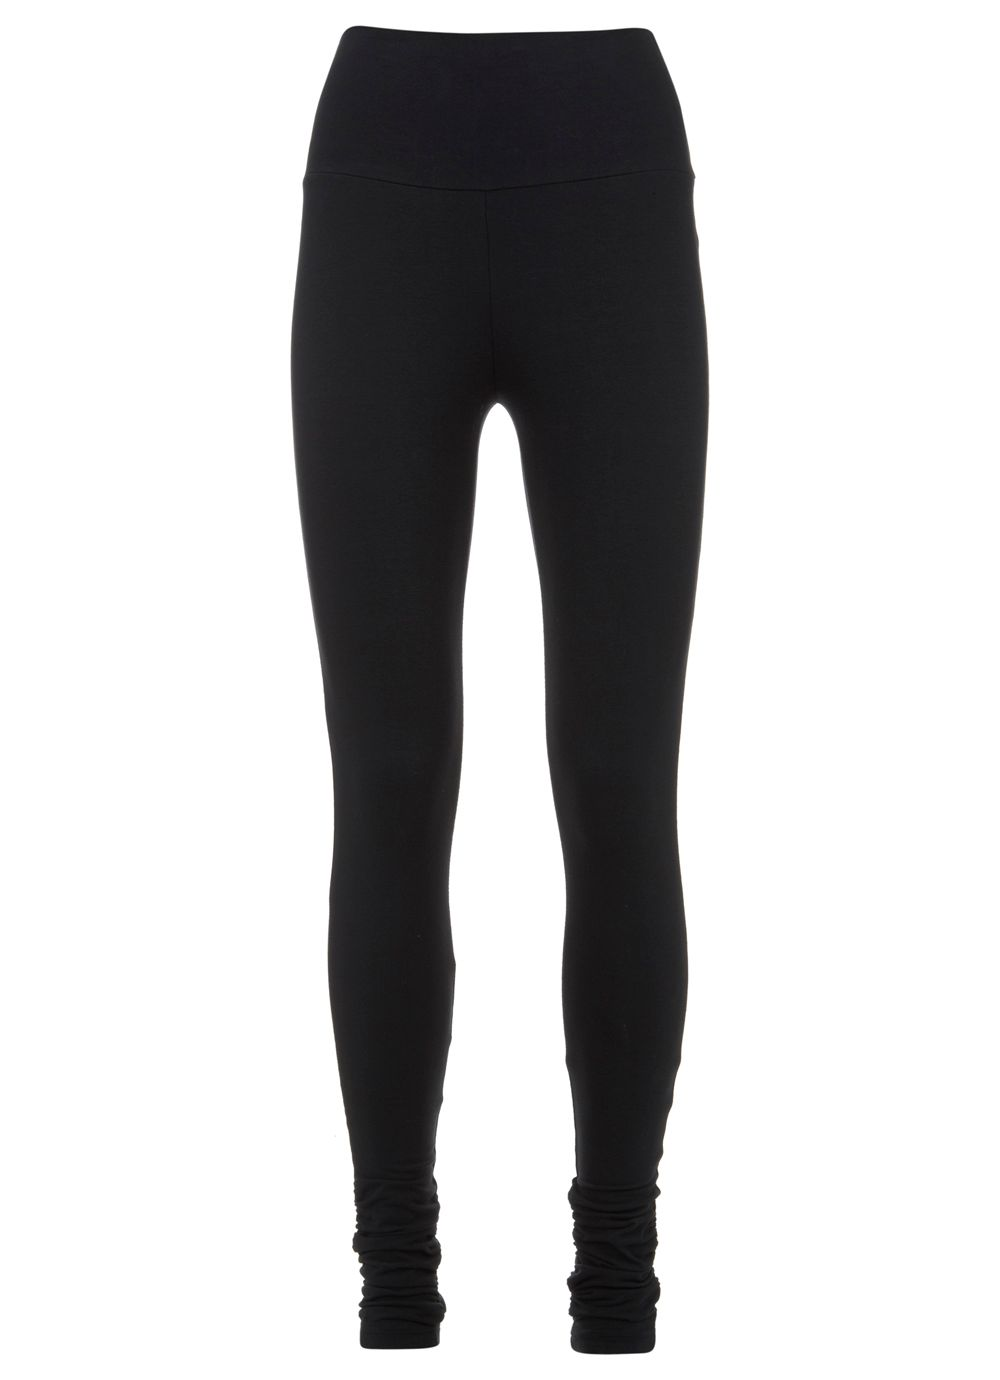 Storm Grey Ruched Leggings